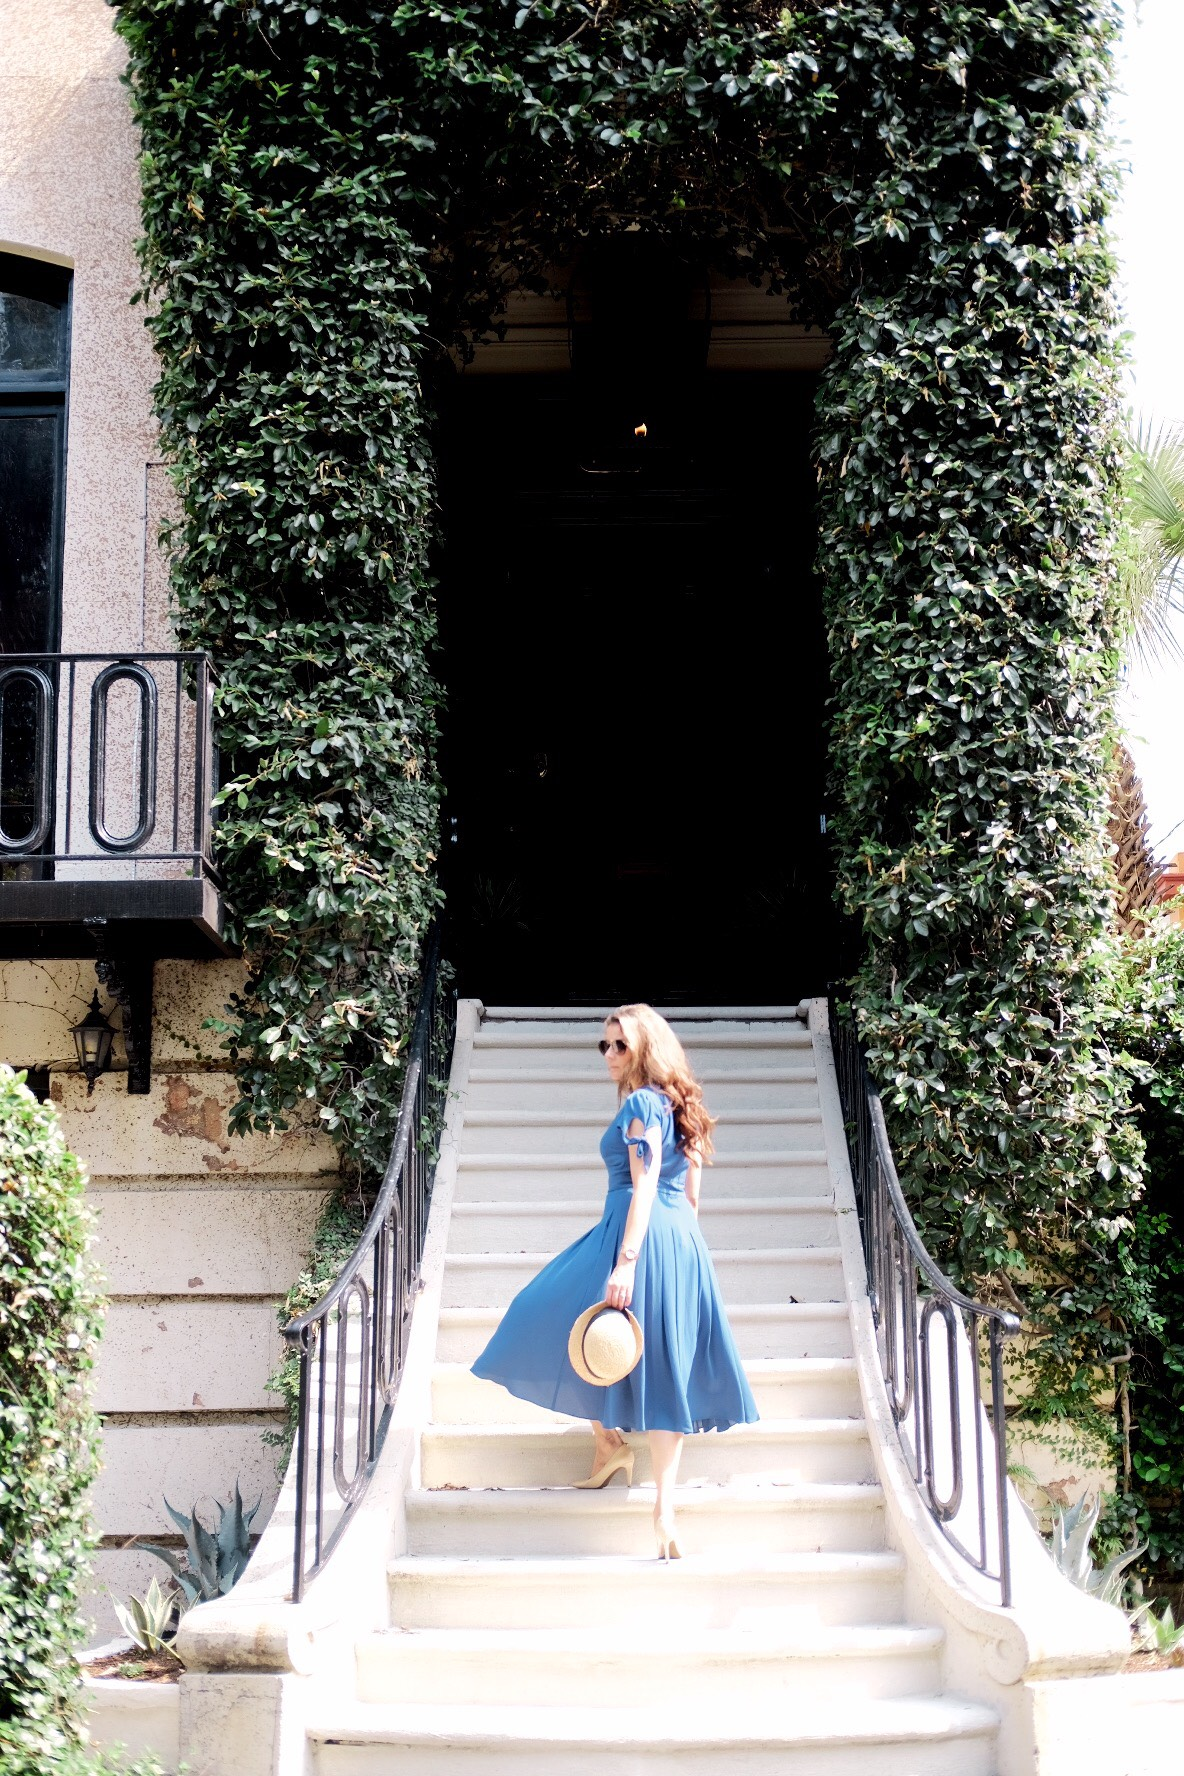 Blue Dress on Brenna Michaels in Savannah Georgia Genteel and Bard